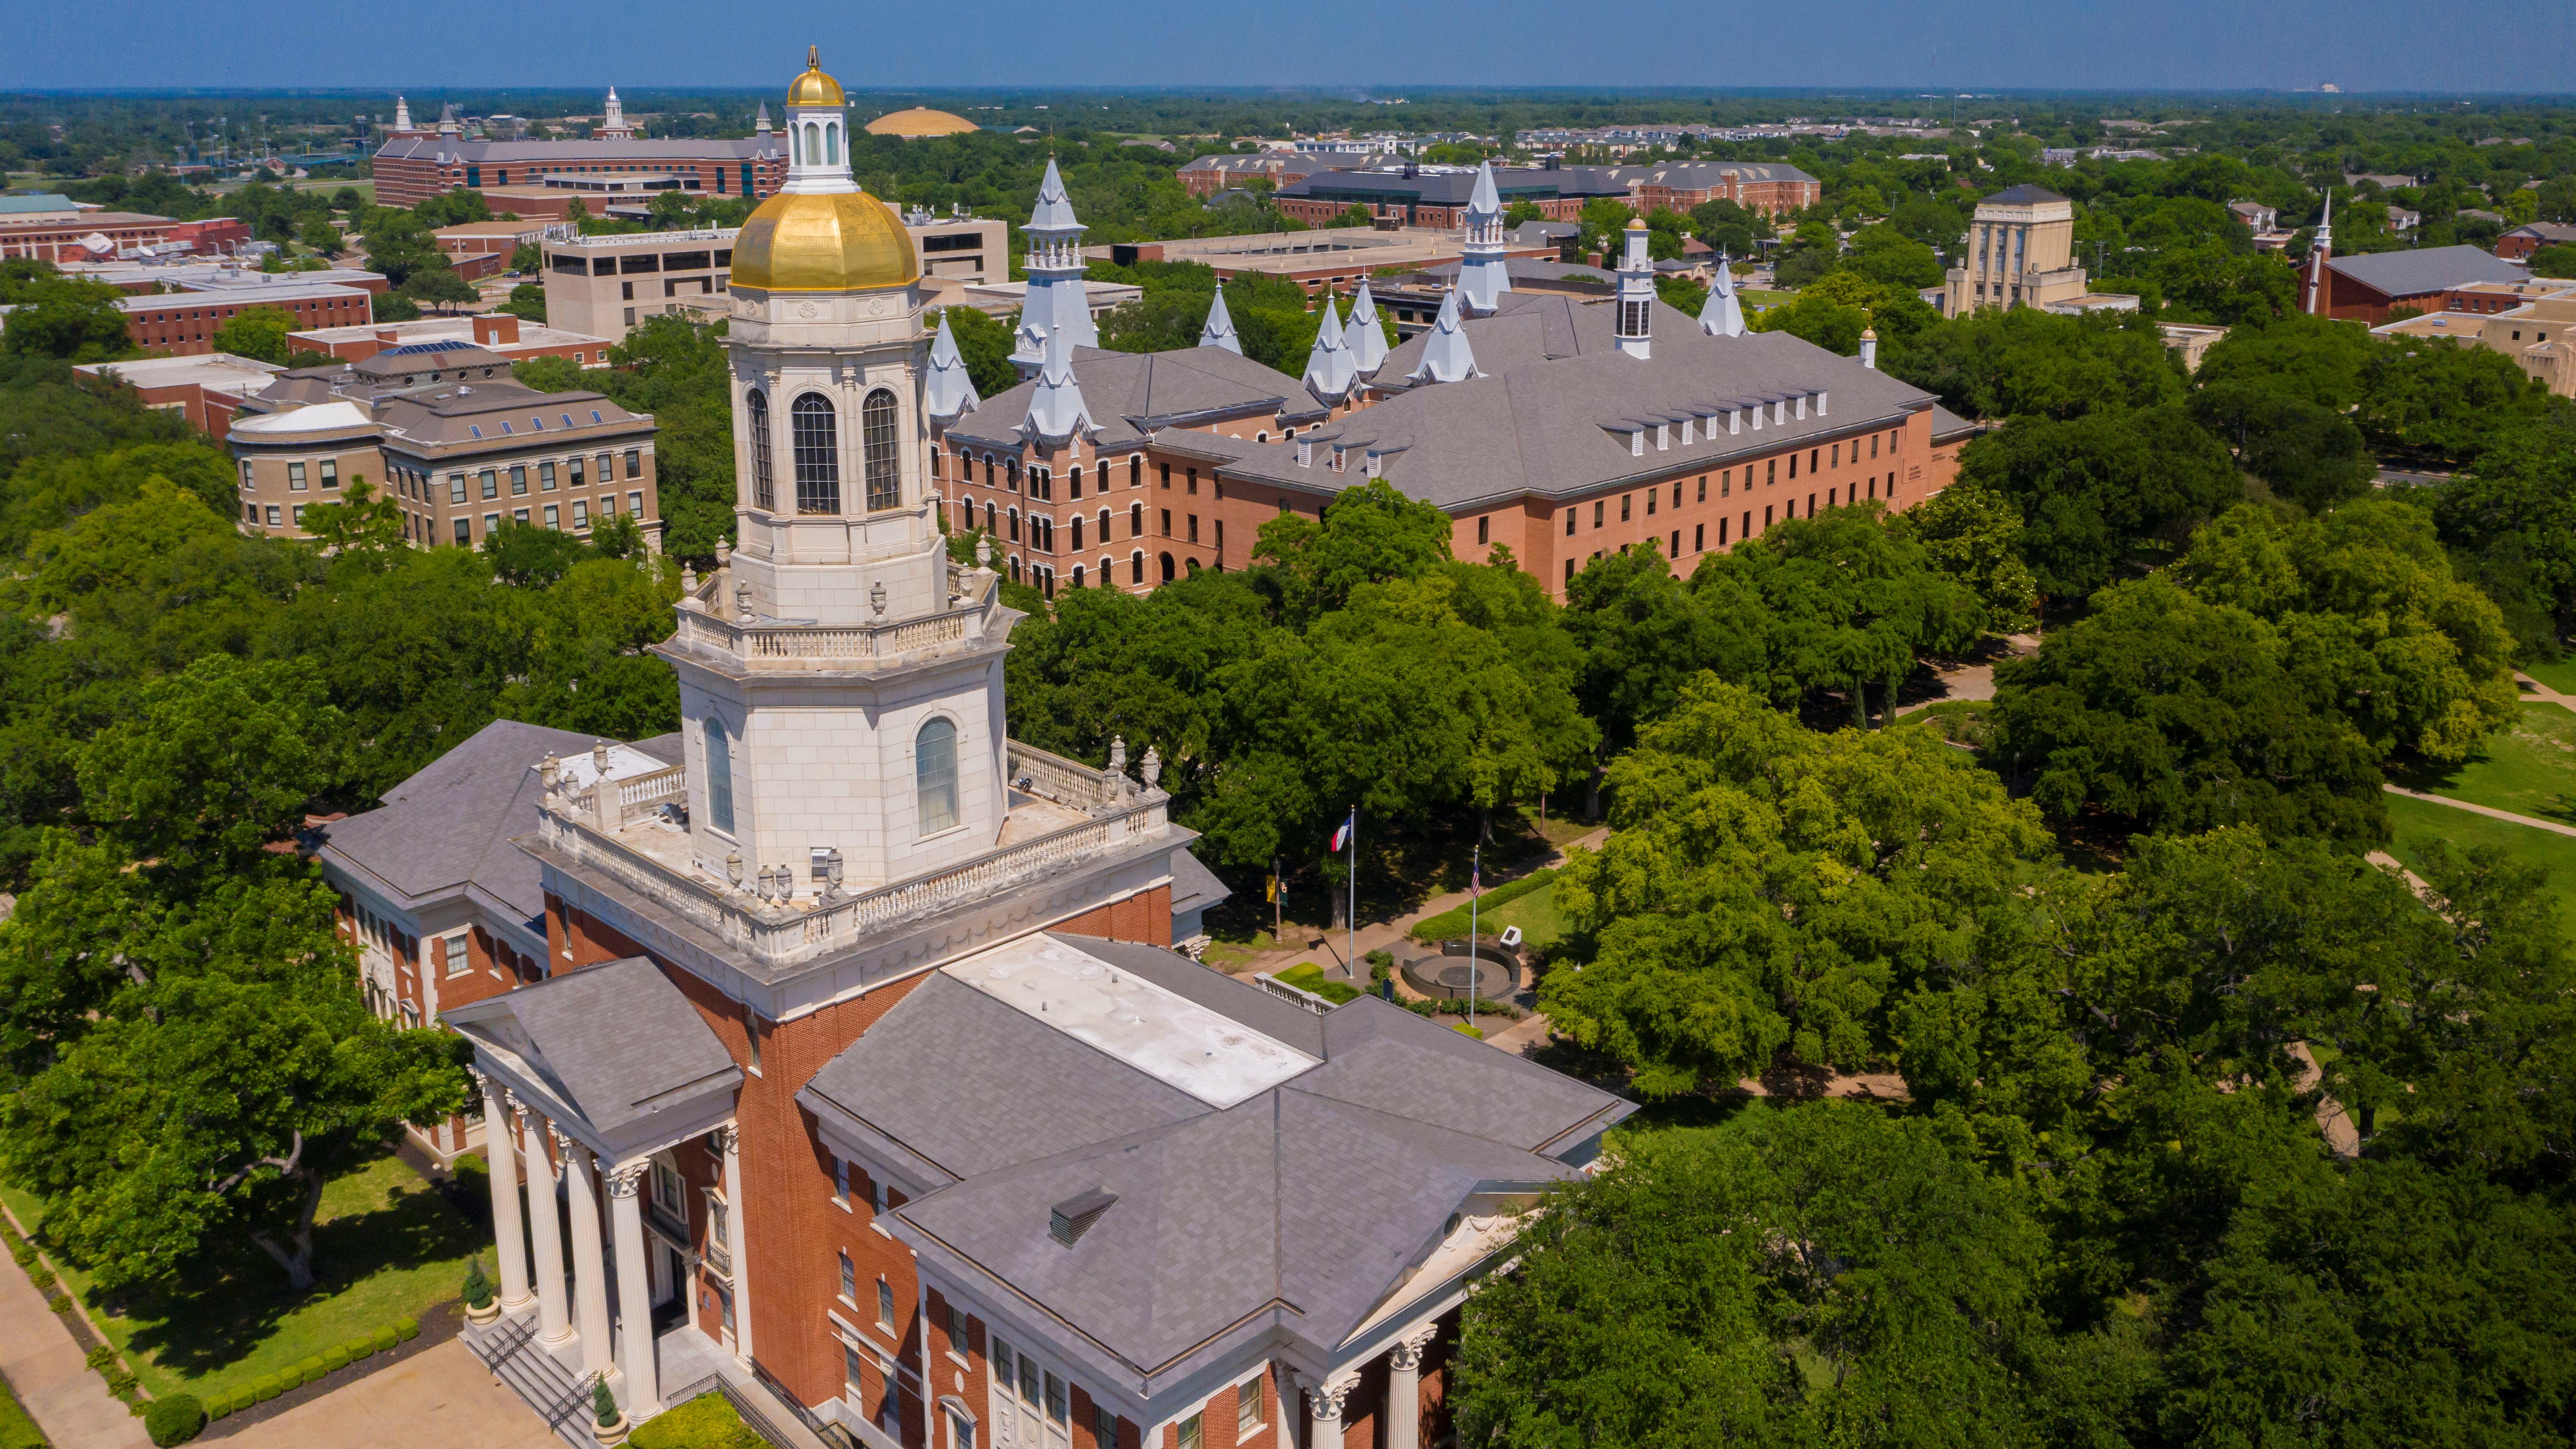 Baylor Calendar Fall 2022.Baylor University Extends Test Optional Admissions Policy For Fall 2022 2023 Media And Public Relations Baylor University